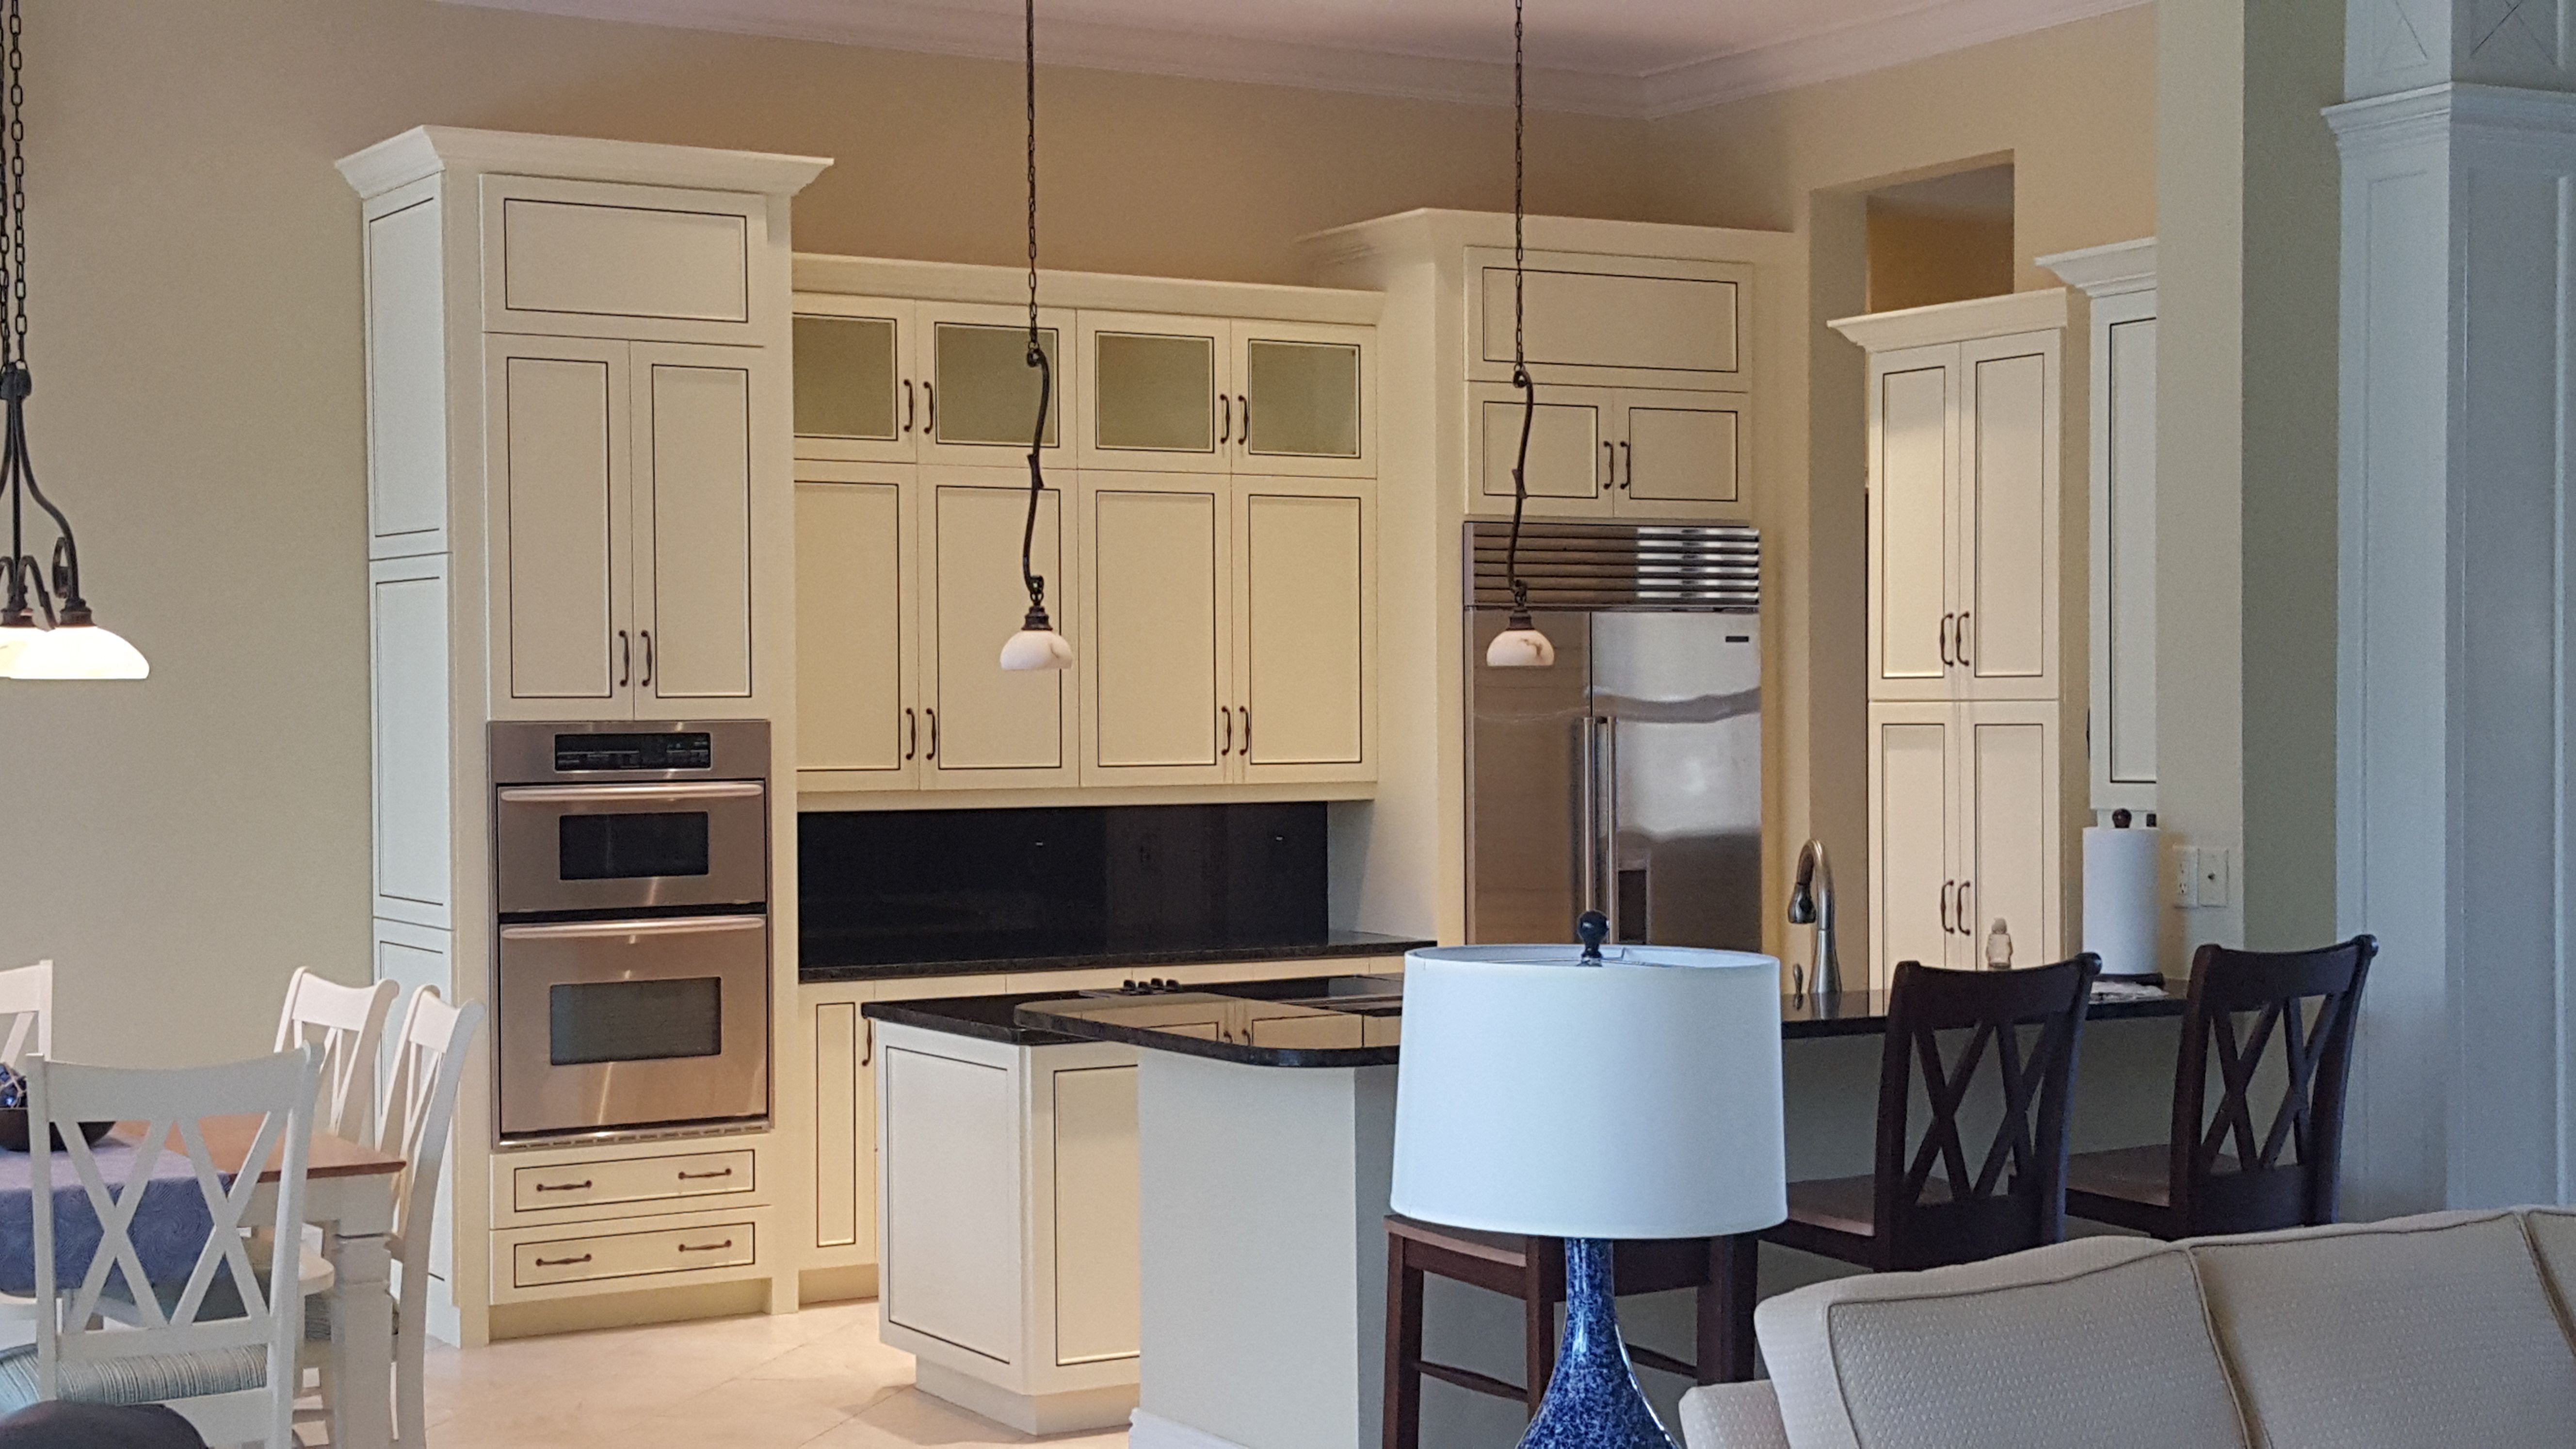 These Kitchen Cabinets Were Painted Then We Added An Accent Line On All The Doors In A Metallic Finish To M Painting Kitchen Cabinets Kitchen Cabinets Sanibel